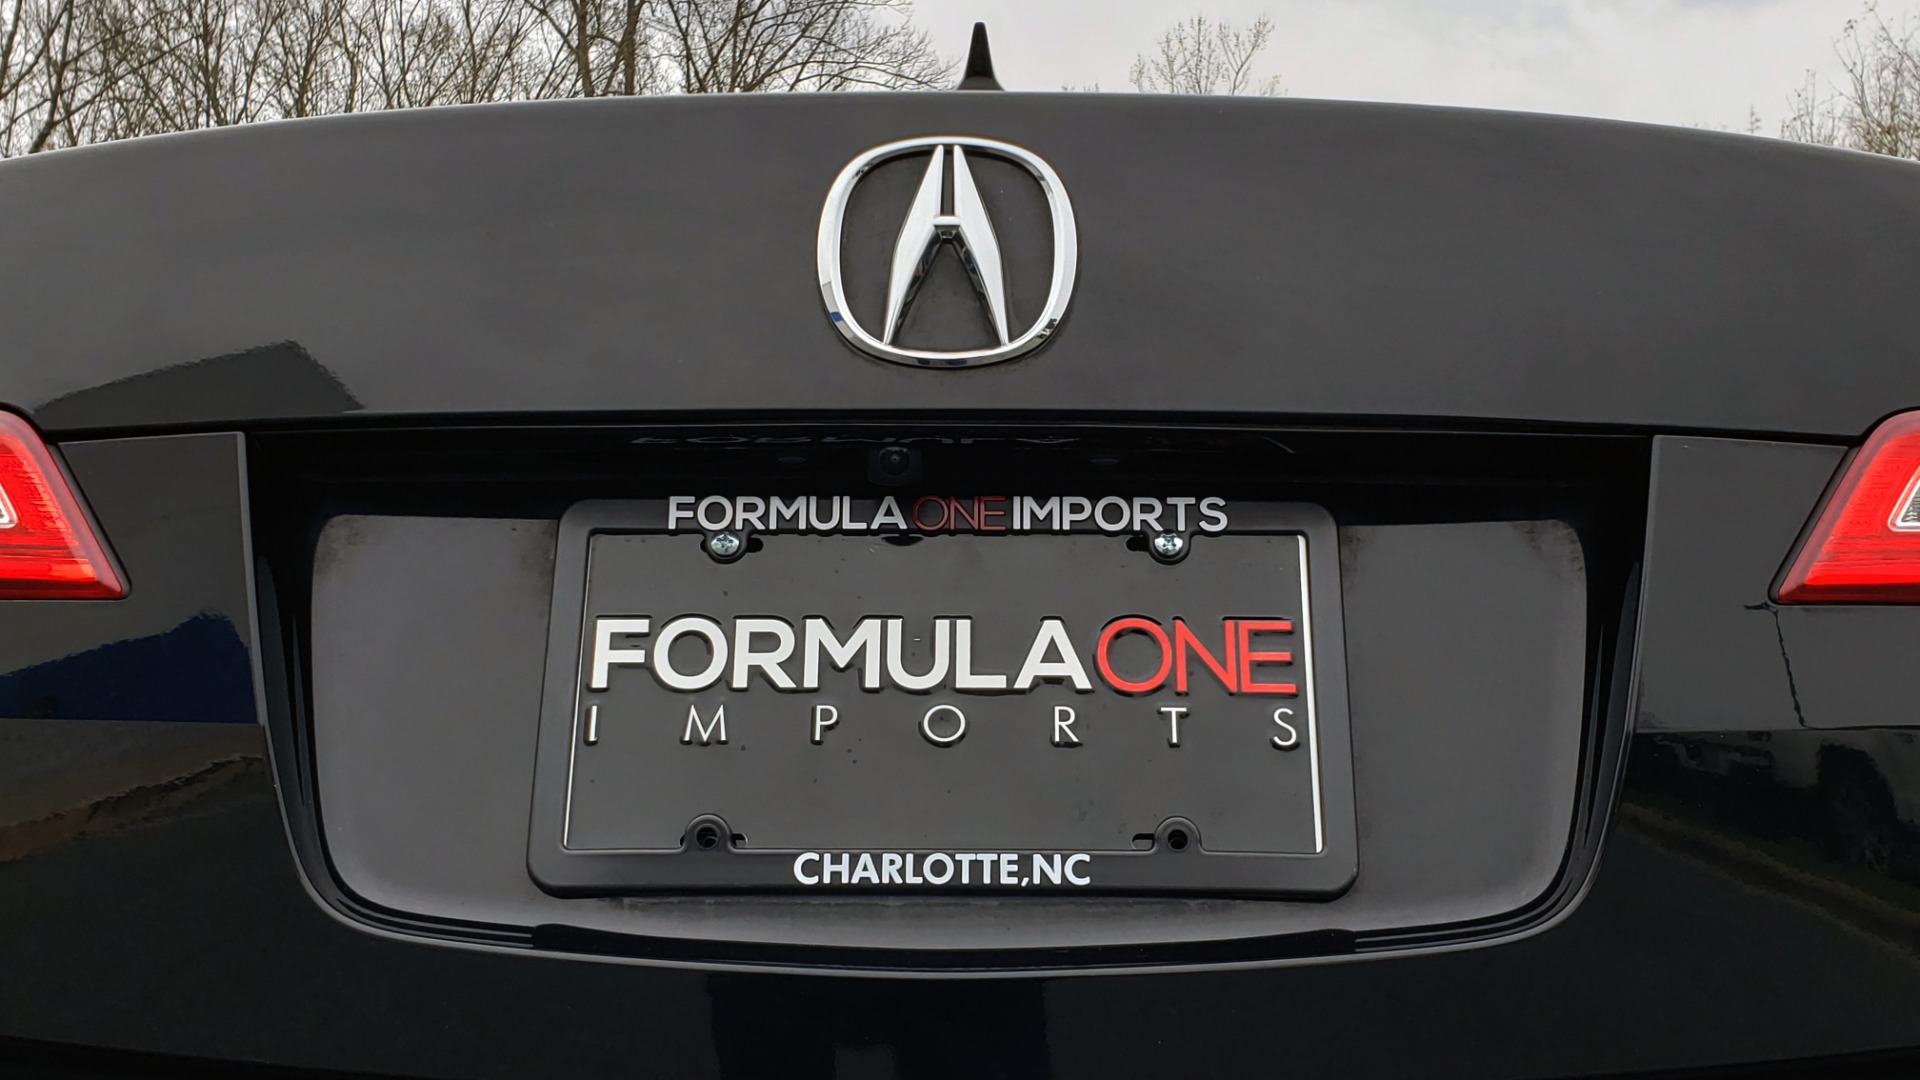 Used 2013 Acura ILX TECH PKG / SUNROOF / NAV / DUAL-ZONE A/C / REARVIEW for sale Sold at Formula Imports in Charlotte NC 28227 31